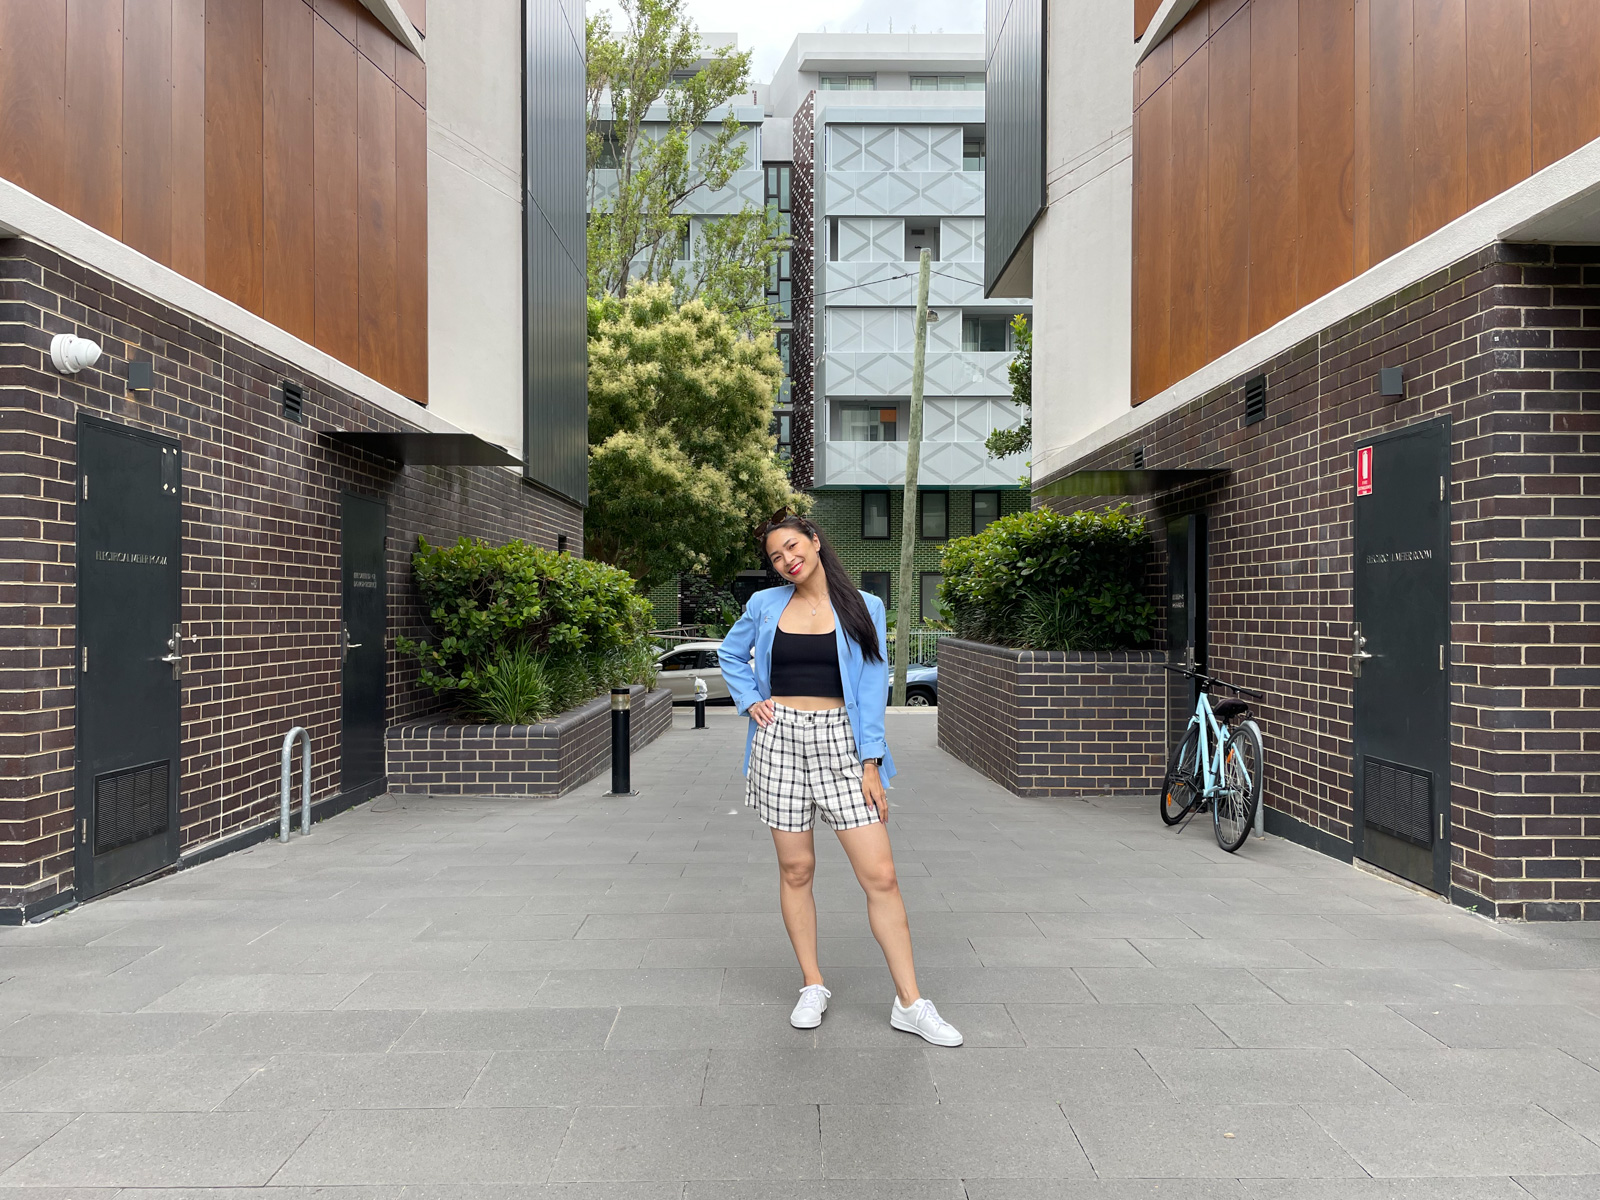 The same woman from previous photos on this page, wearing the same outfit. She is standing in a walkway with brick walls with storeroom doors on either side. There is a street and apartment building in the background behind her. She has one hand on her hip.